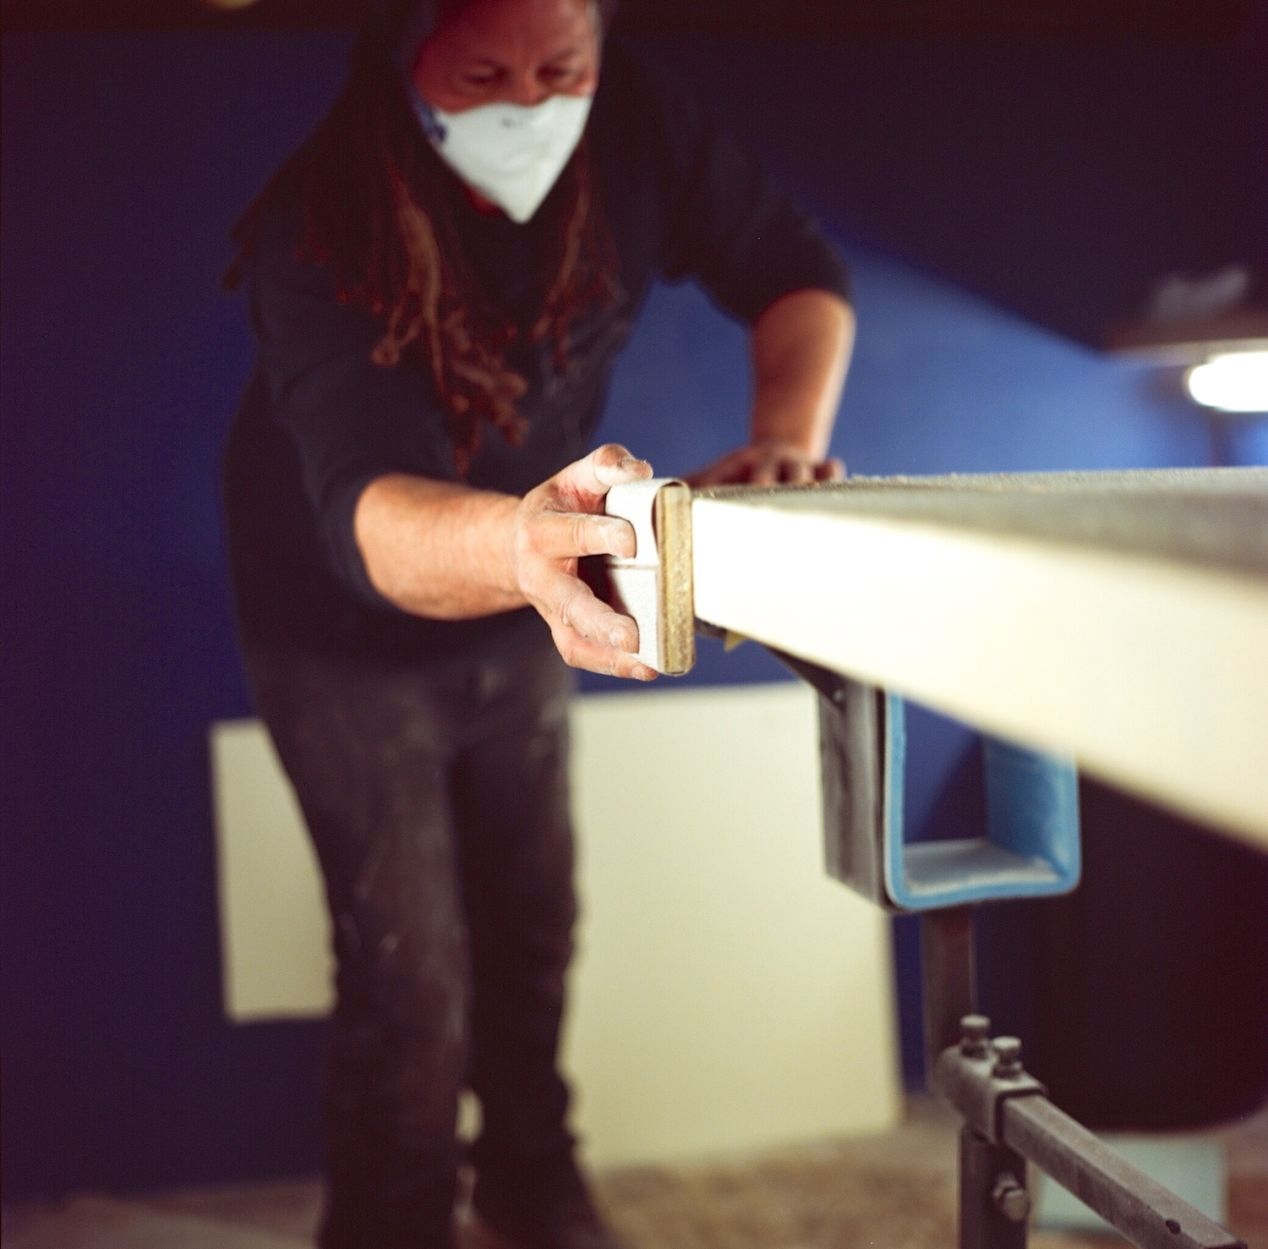 Sanding the shape. Camera: Hasselblad 500. Film: Kodak Ektar 100 (expired in 2012).